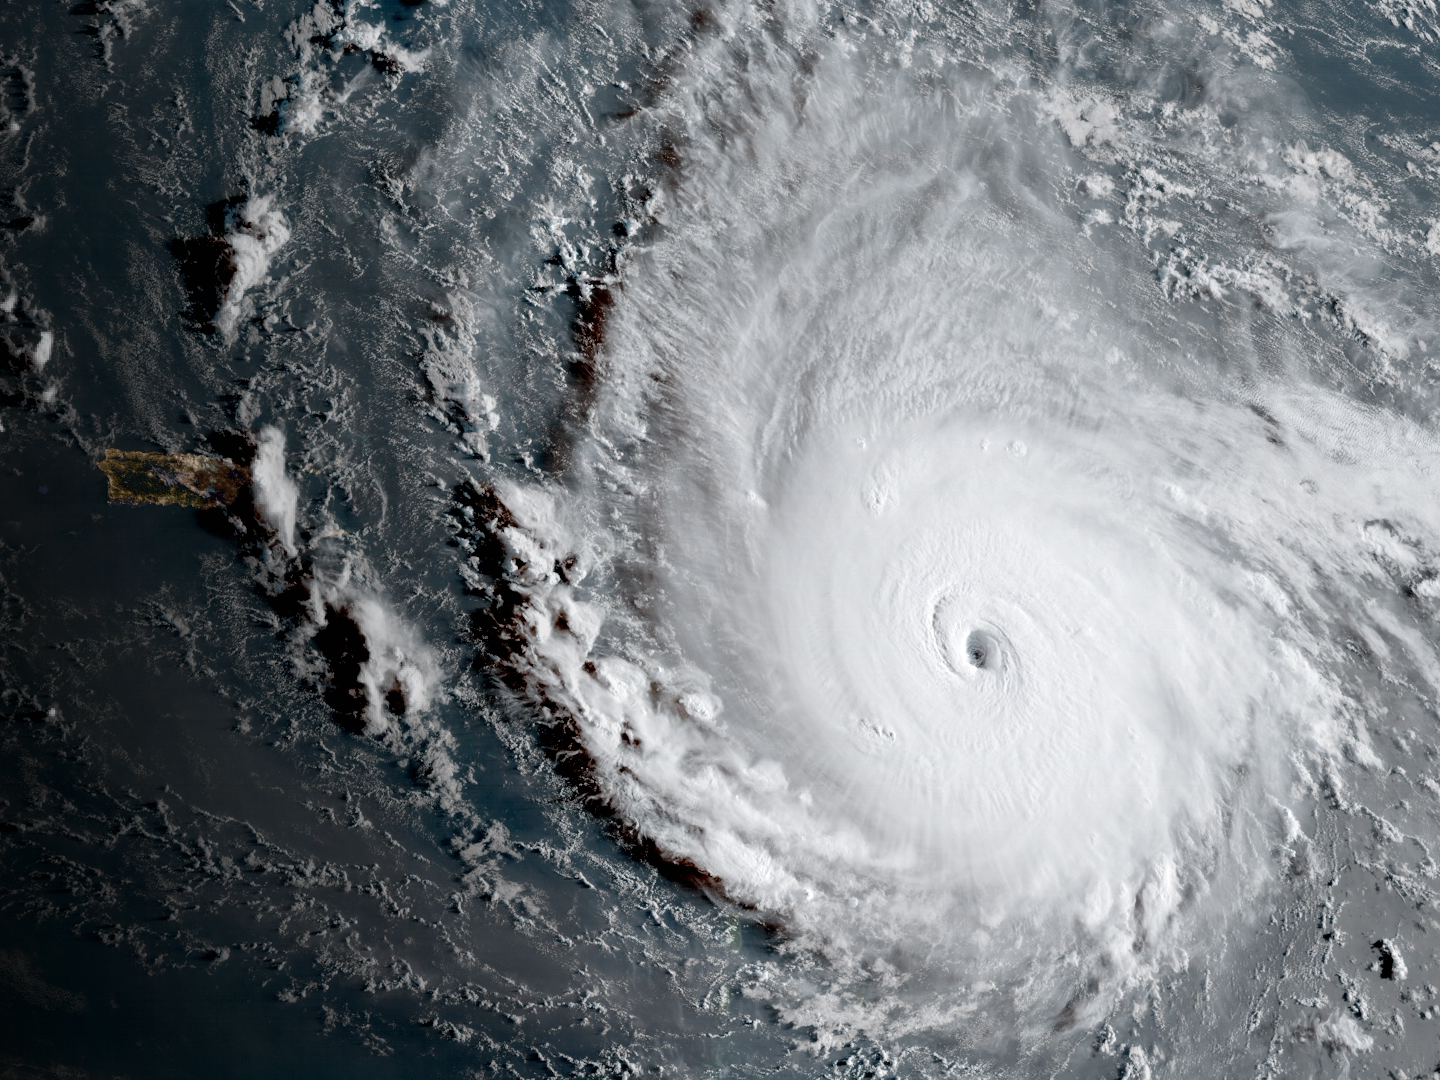 hurricane-irma-looks-monstrous-in-a-new-video-recorded-by-the-international-space-station.png